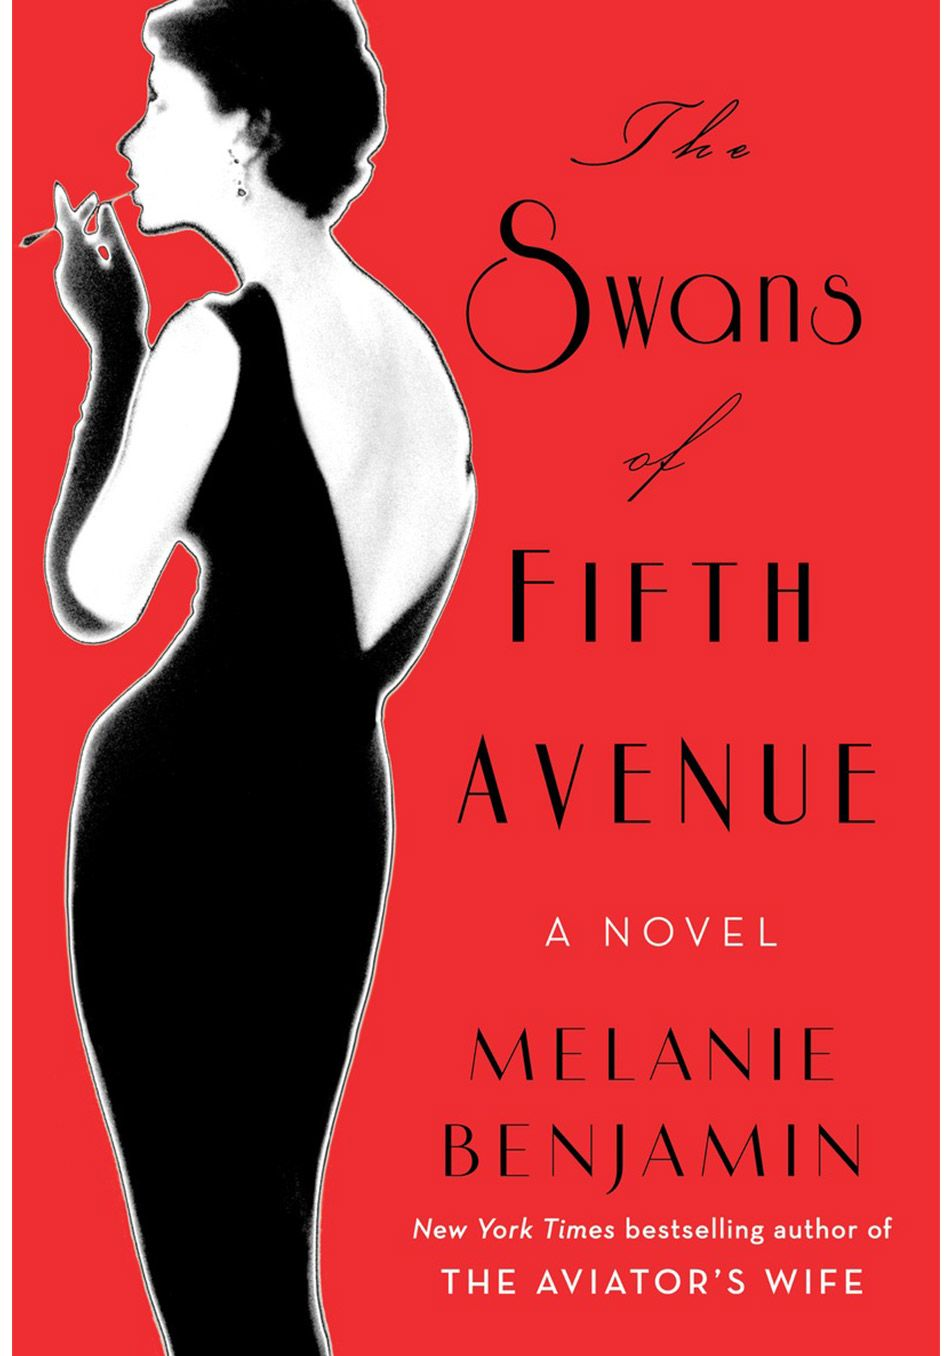 """""""Babe Paley had only one fault: She was perfect. Otherwise, she was perfect,"""" reputedly remarked Truman Capote, part of Paley's glamorous inner circle until he famously betrayed her in a biting roman à clef. The era and the sordid details come back to life in this jewel of a novel."""